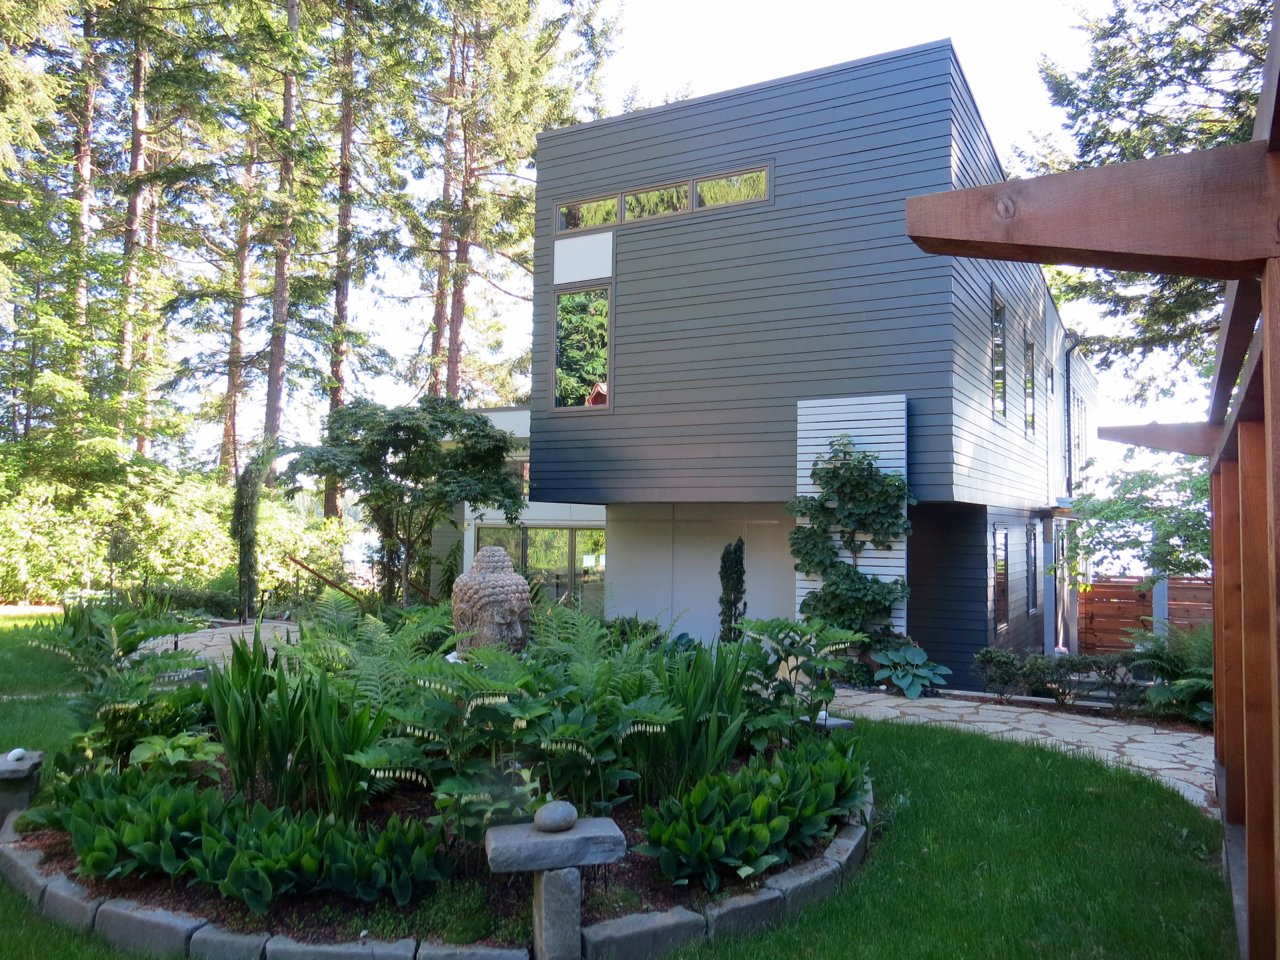 Outdoor, Back Yard, Trees, Grass, Hardscapes, Walkways, Gardens, Shrubs, and Wood Fences, Wall Back yard upon entry  Cortes Island Custom Blu Prefab by Mark Spevakow